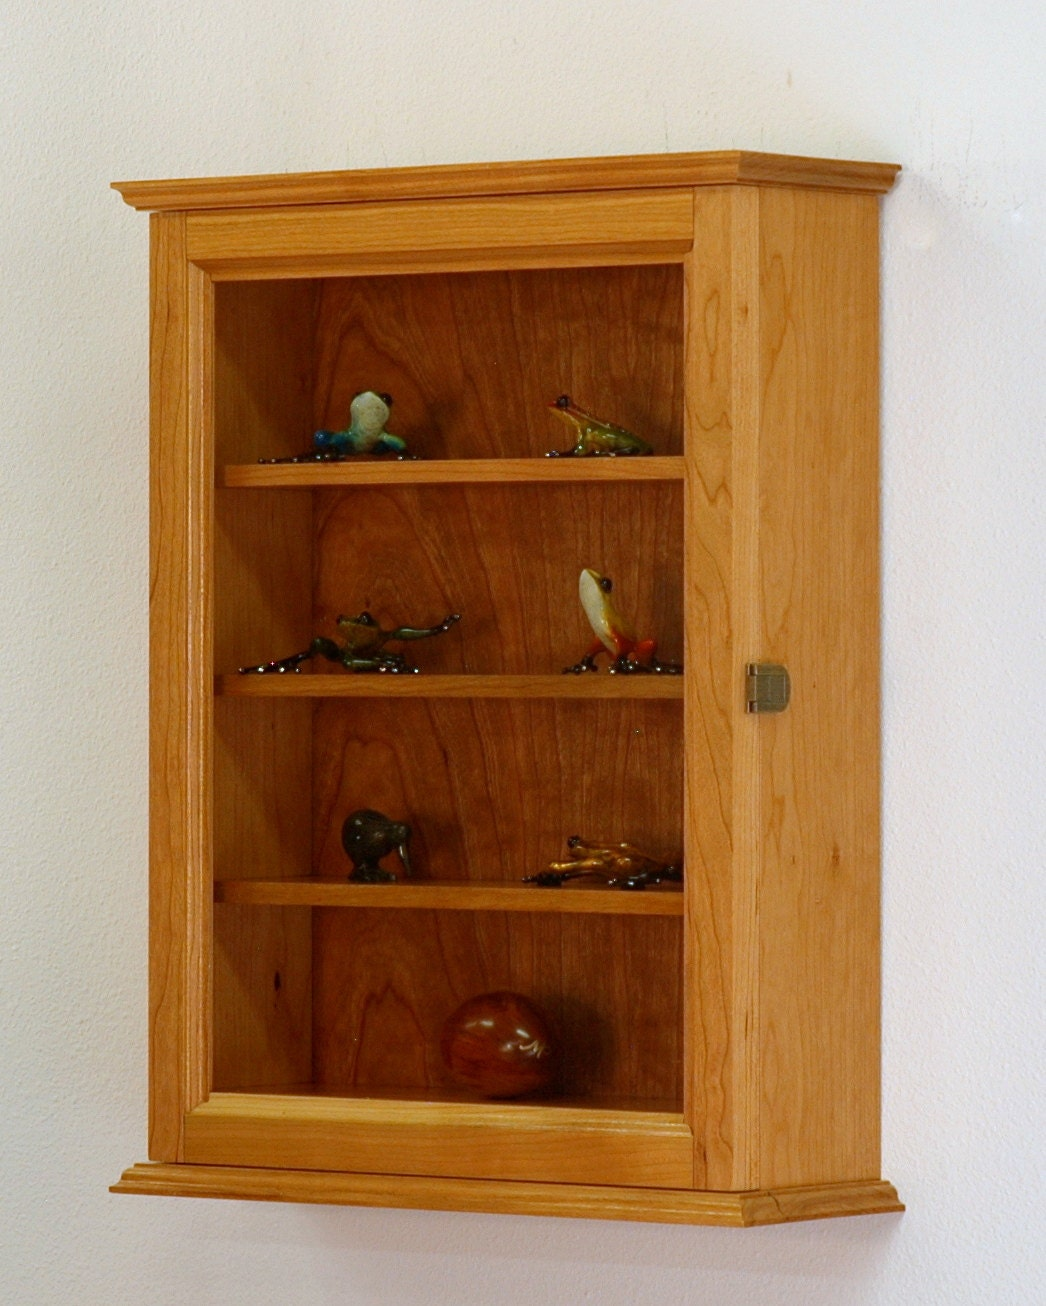 cherry hardwood curio display wall cabinet. Black Bedroom Furniture Sets. Home Design Ideas